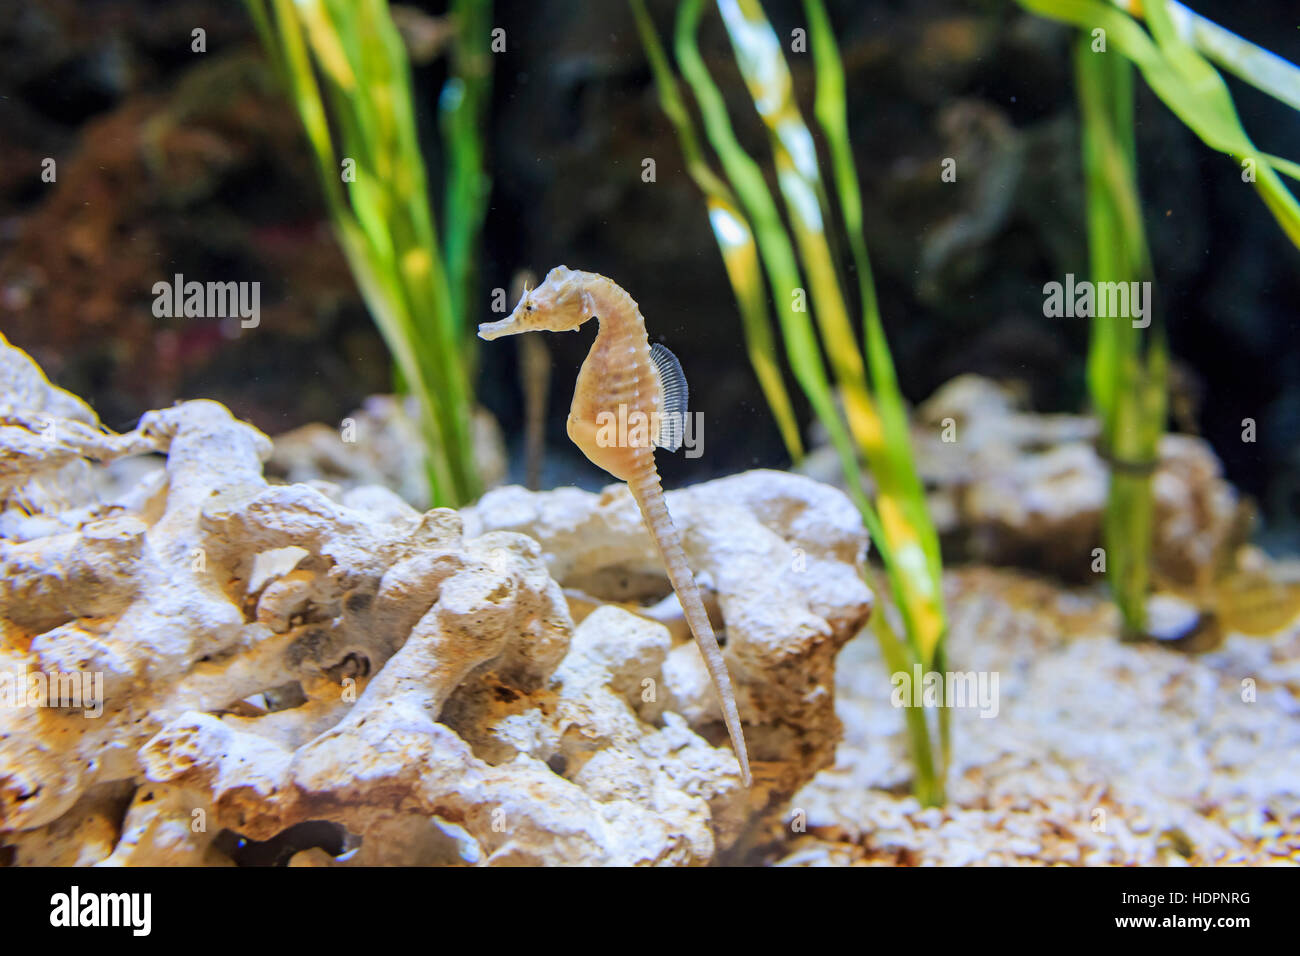 The cute Seahorse swimming alone in the water - Stock Image